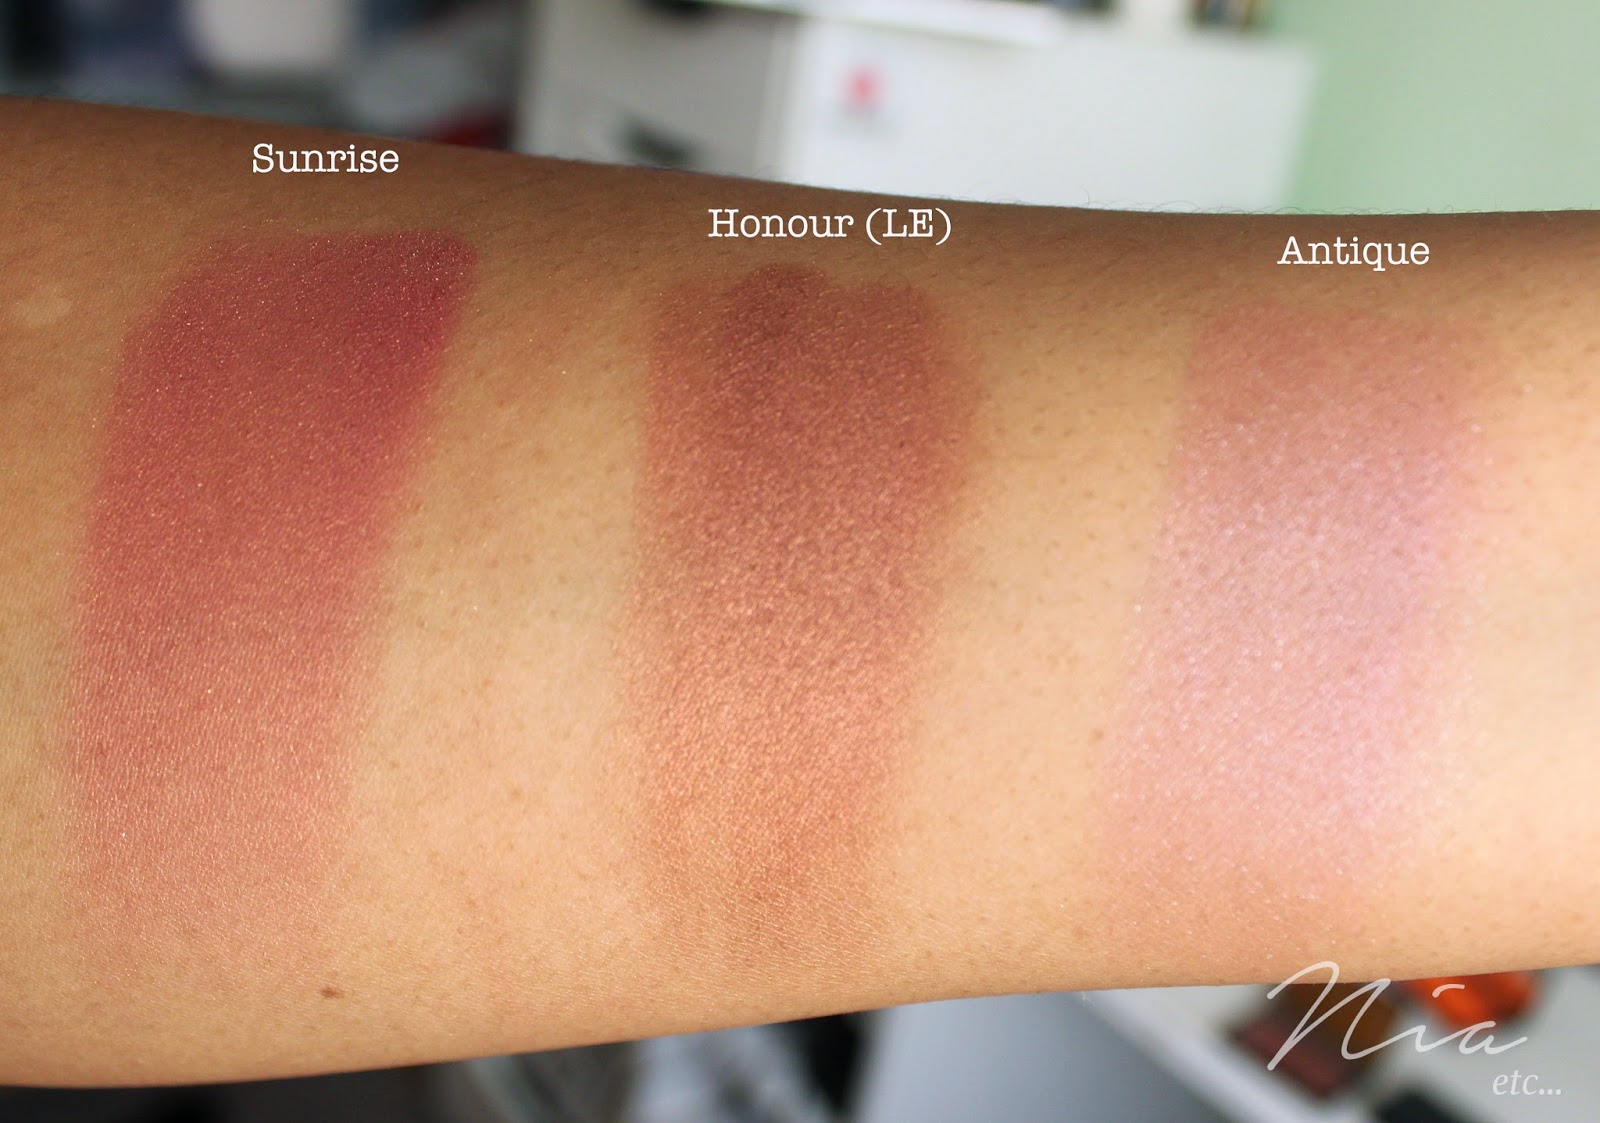 Sleek MakeUp Blushers in Sunrise, Honour and Antique Swatches